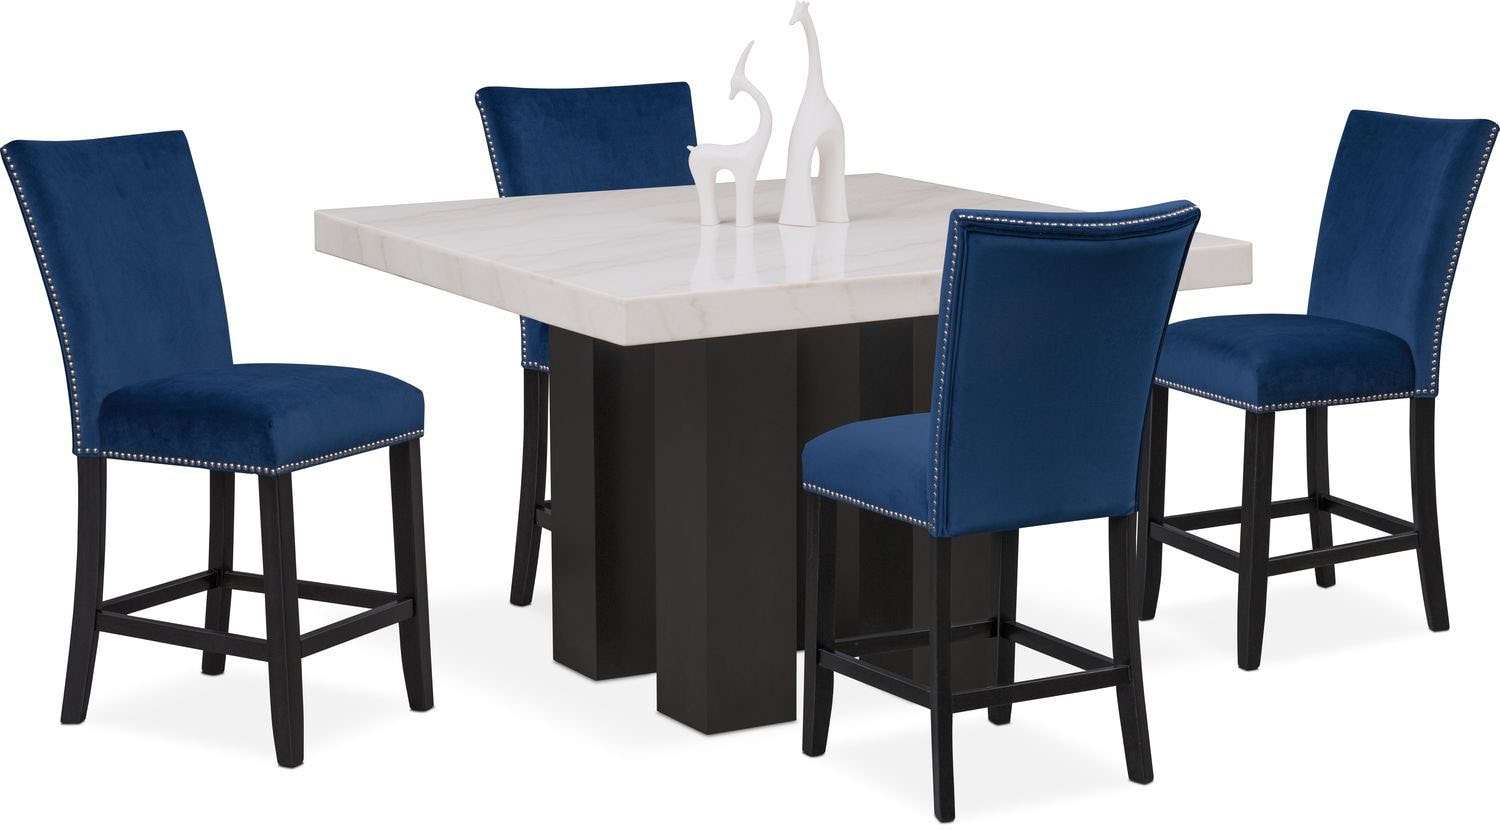 artemis counter height dining table and 4 upholstered